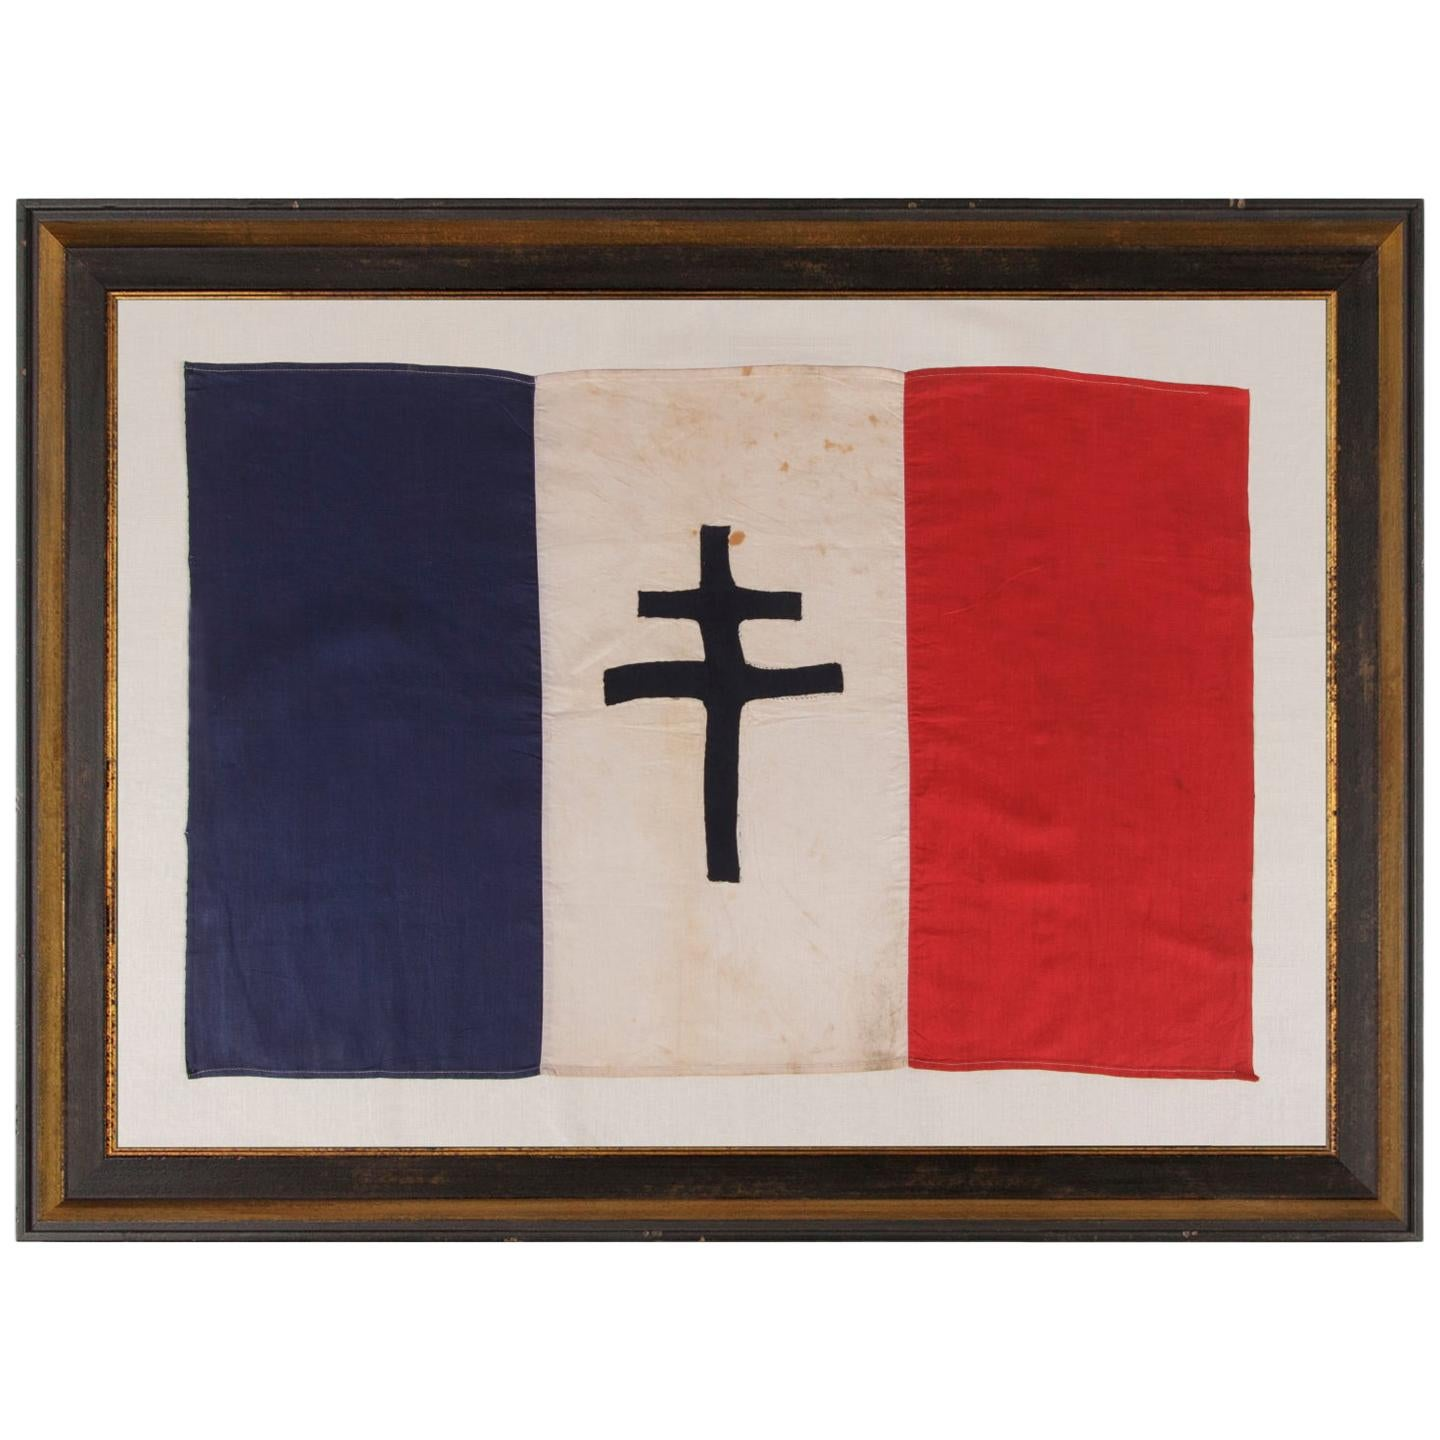 WWII Period French Flag with the Cross of Lorraine